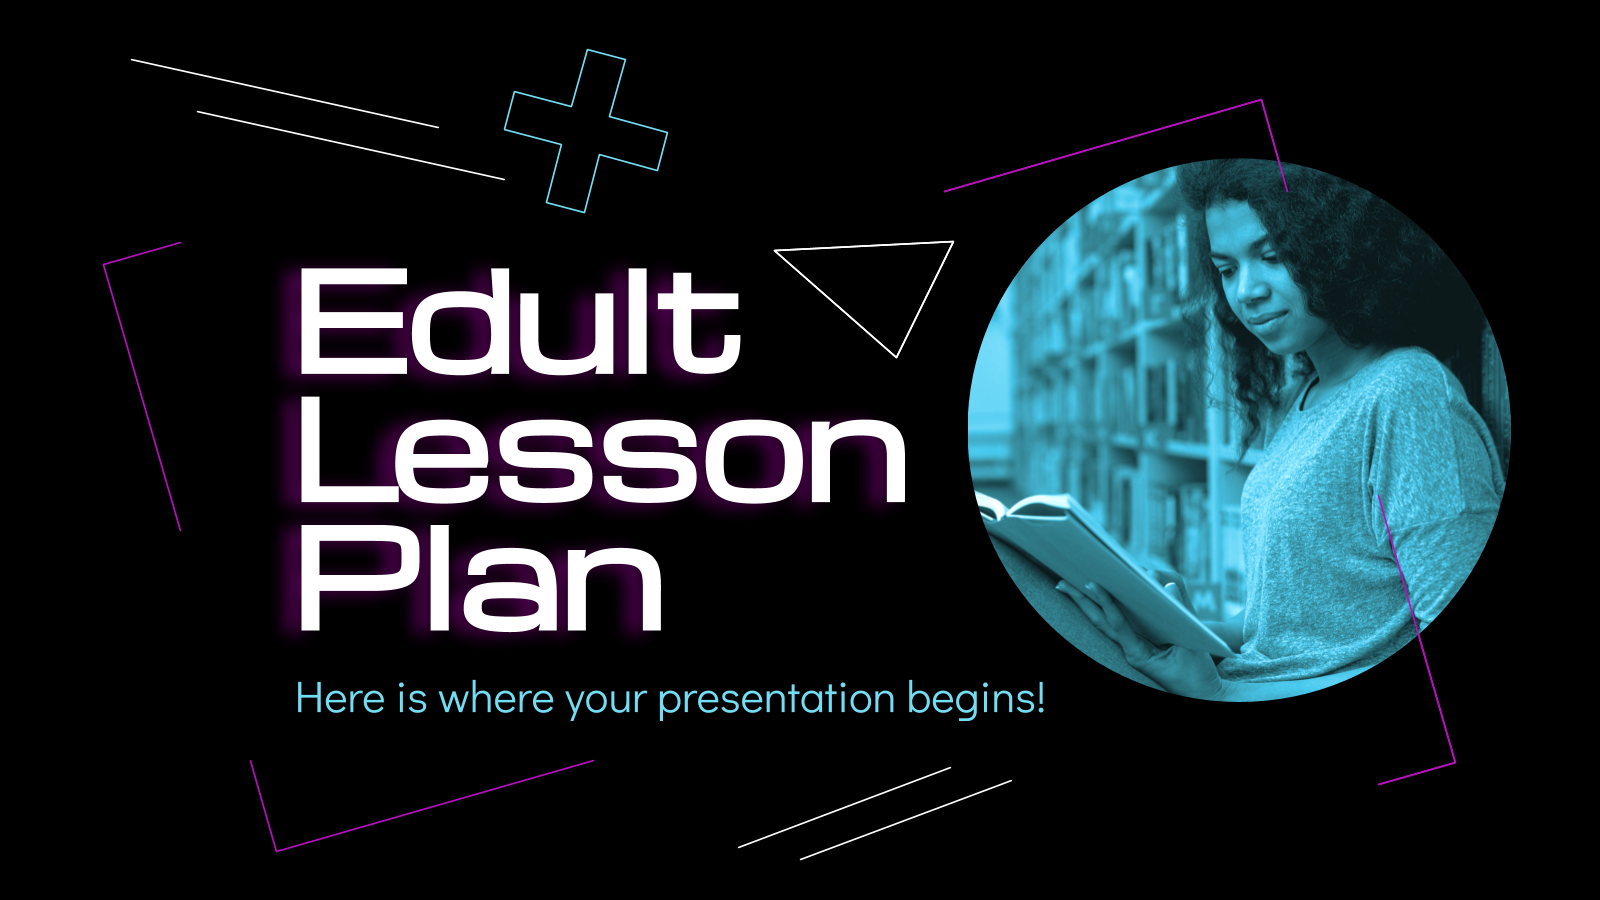 Edult Lesson Plan presentation template